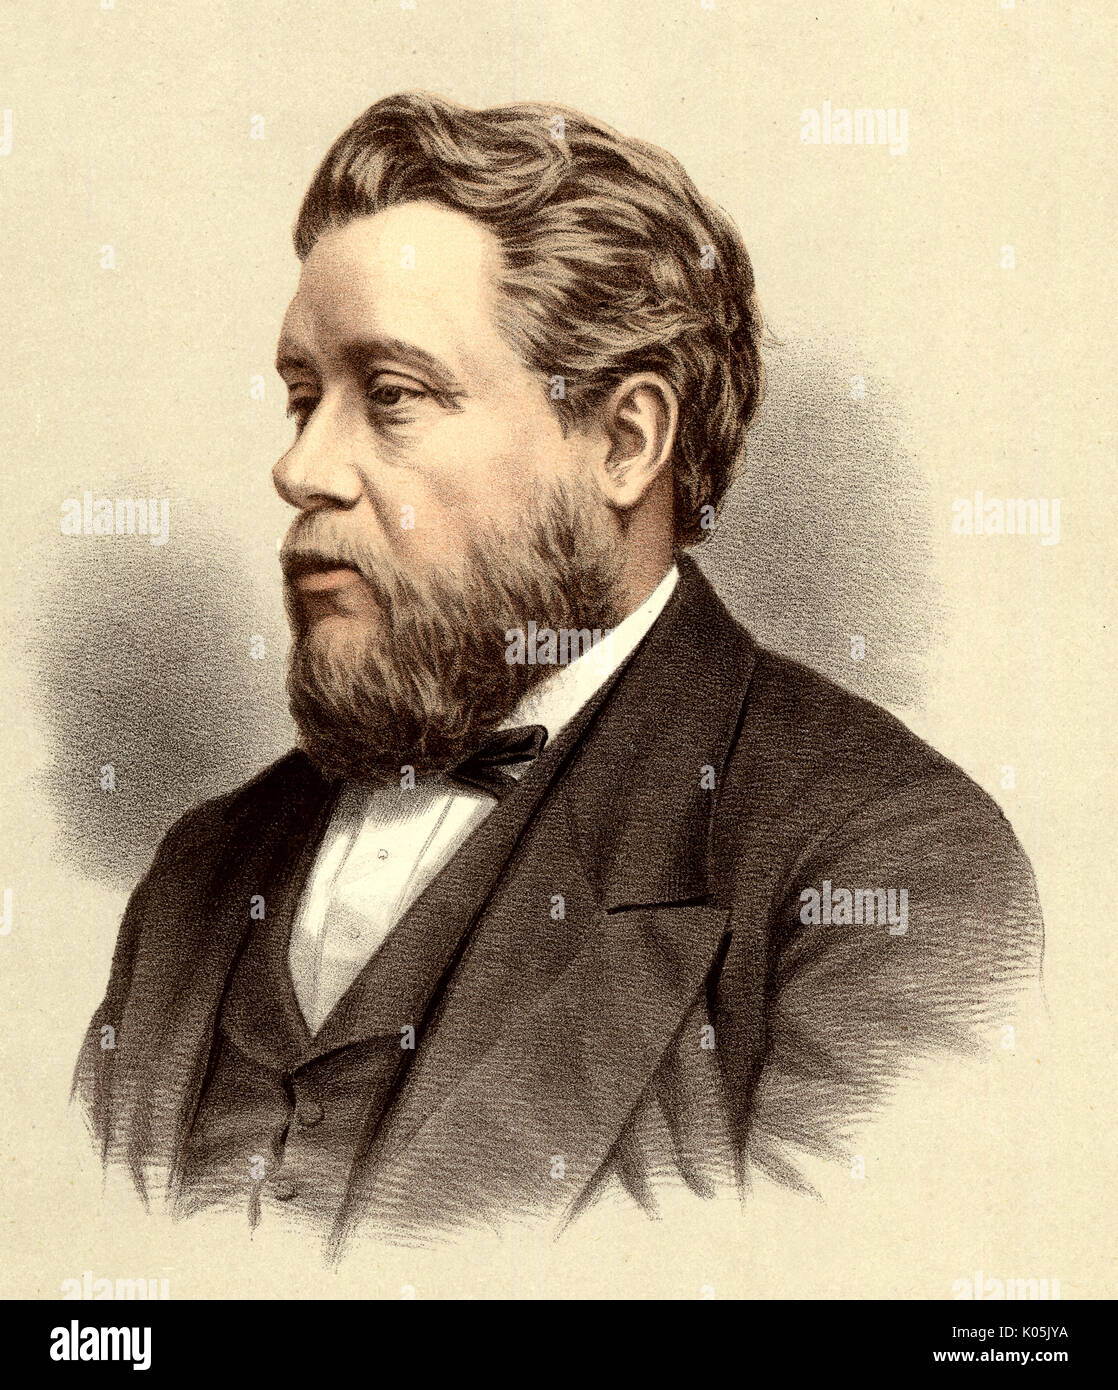 spurgeon dating Devotionals / charles spurgeon's morning and evening - thursday, may 17, 2018 morning and evening, kjv edition--soft leather-look, dark tan retail: $2495.